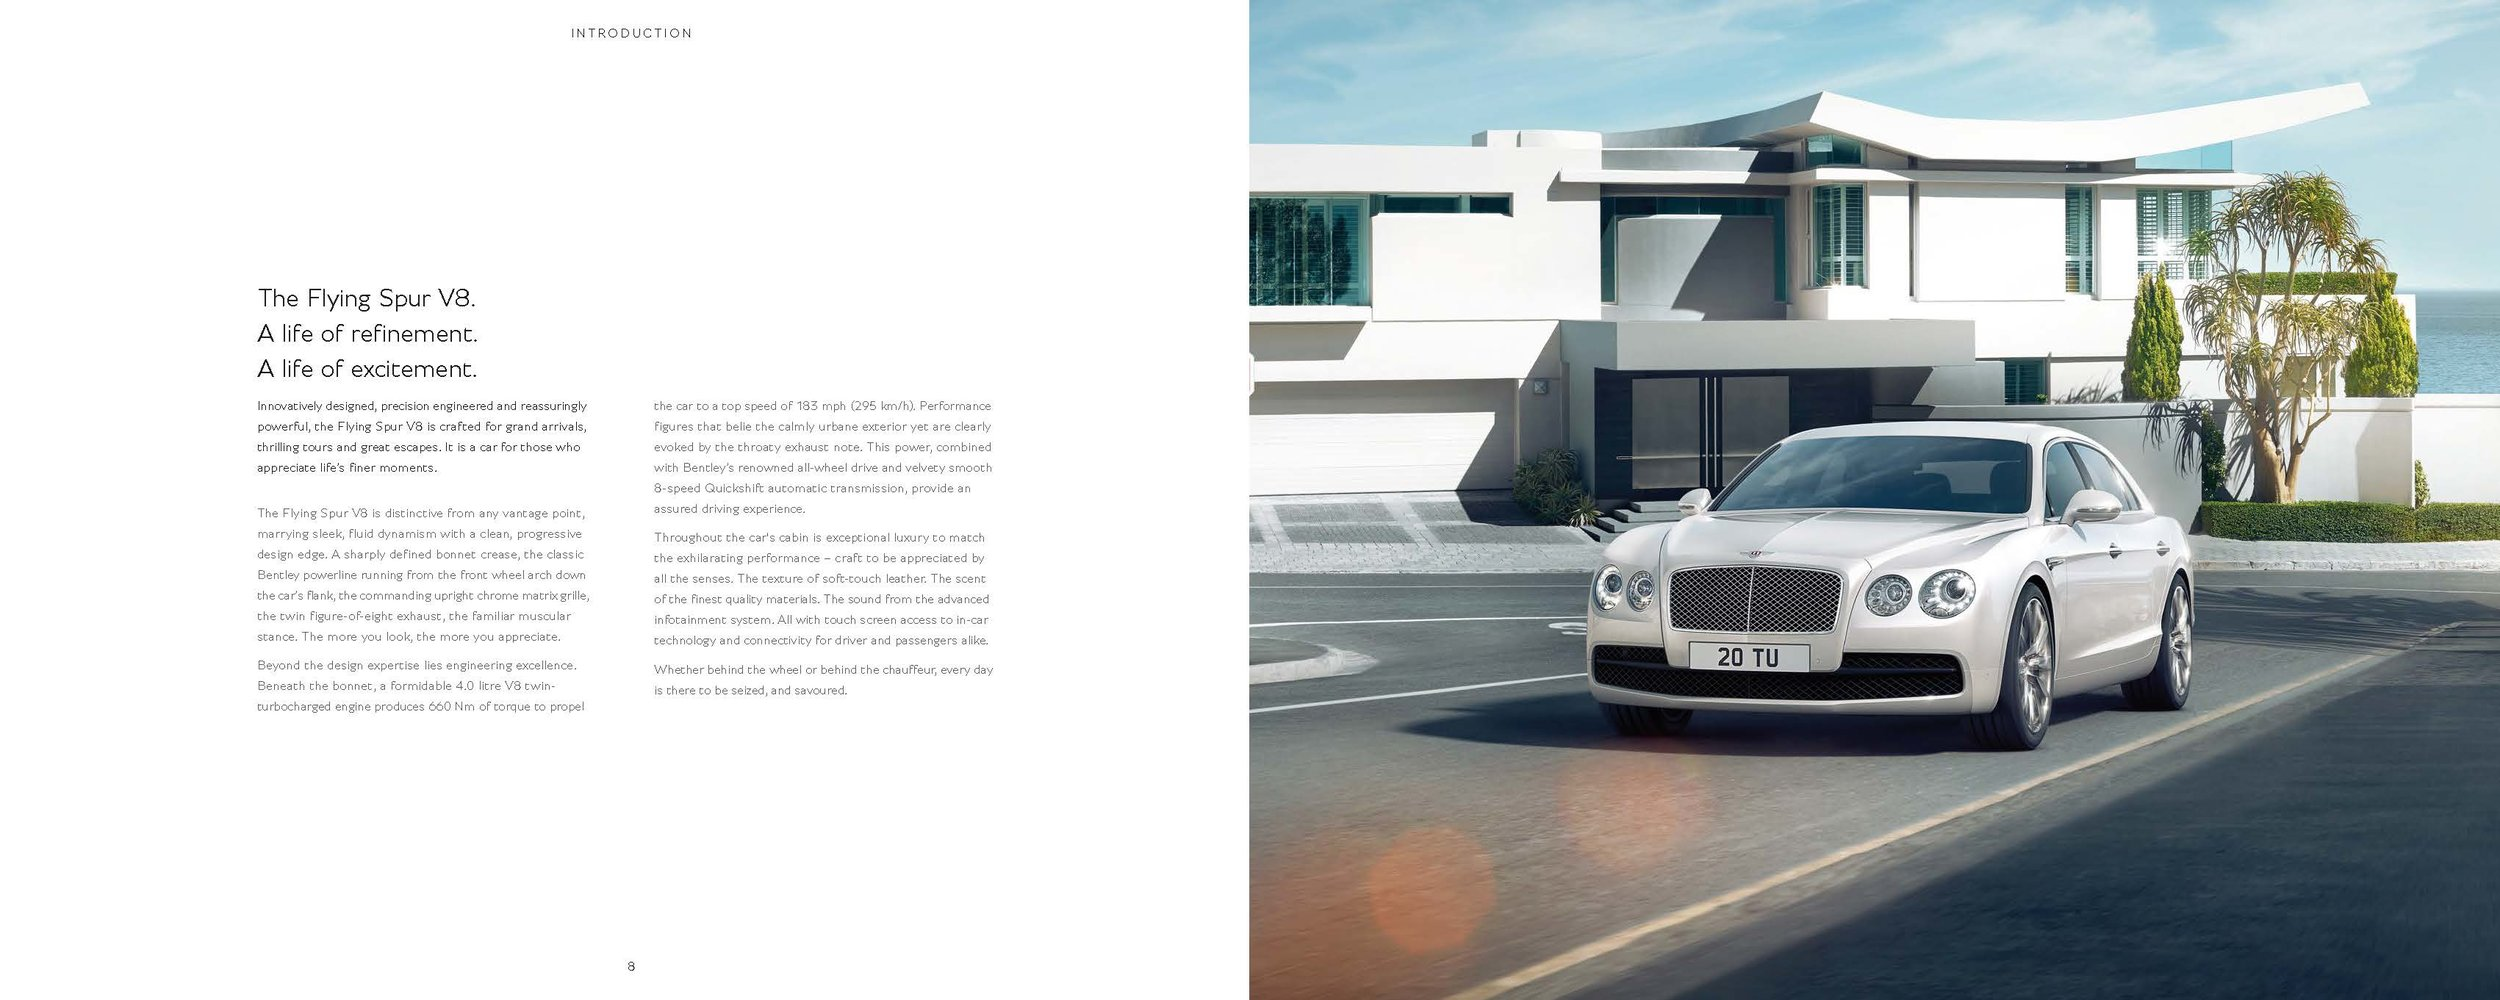 BENFS-16-012_Flying Spur Customer Book Cover & Contents CLEAN_v15_Page_07.jpg